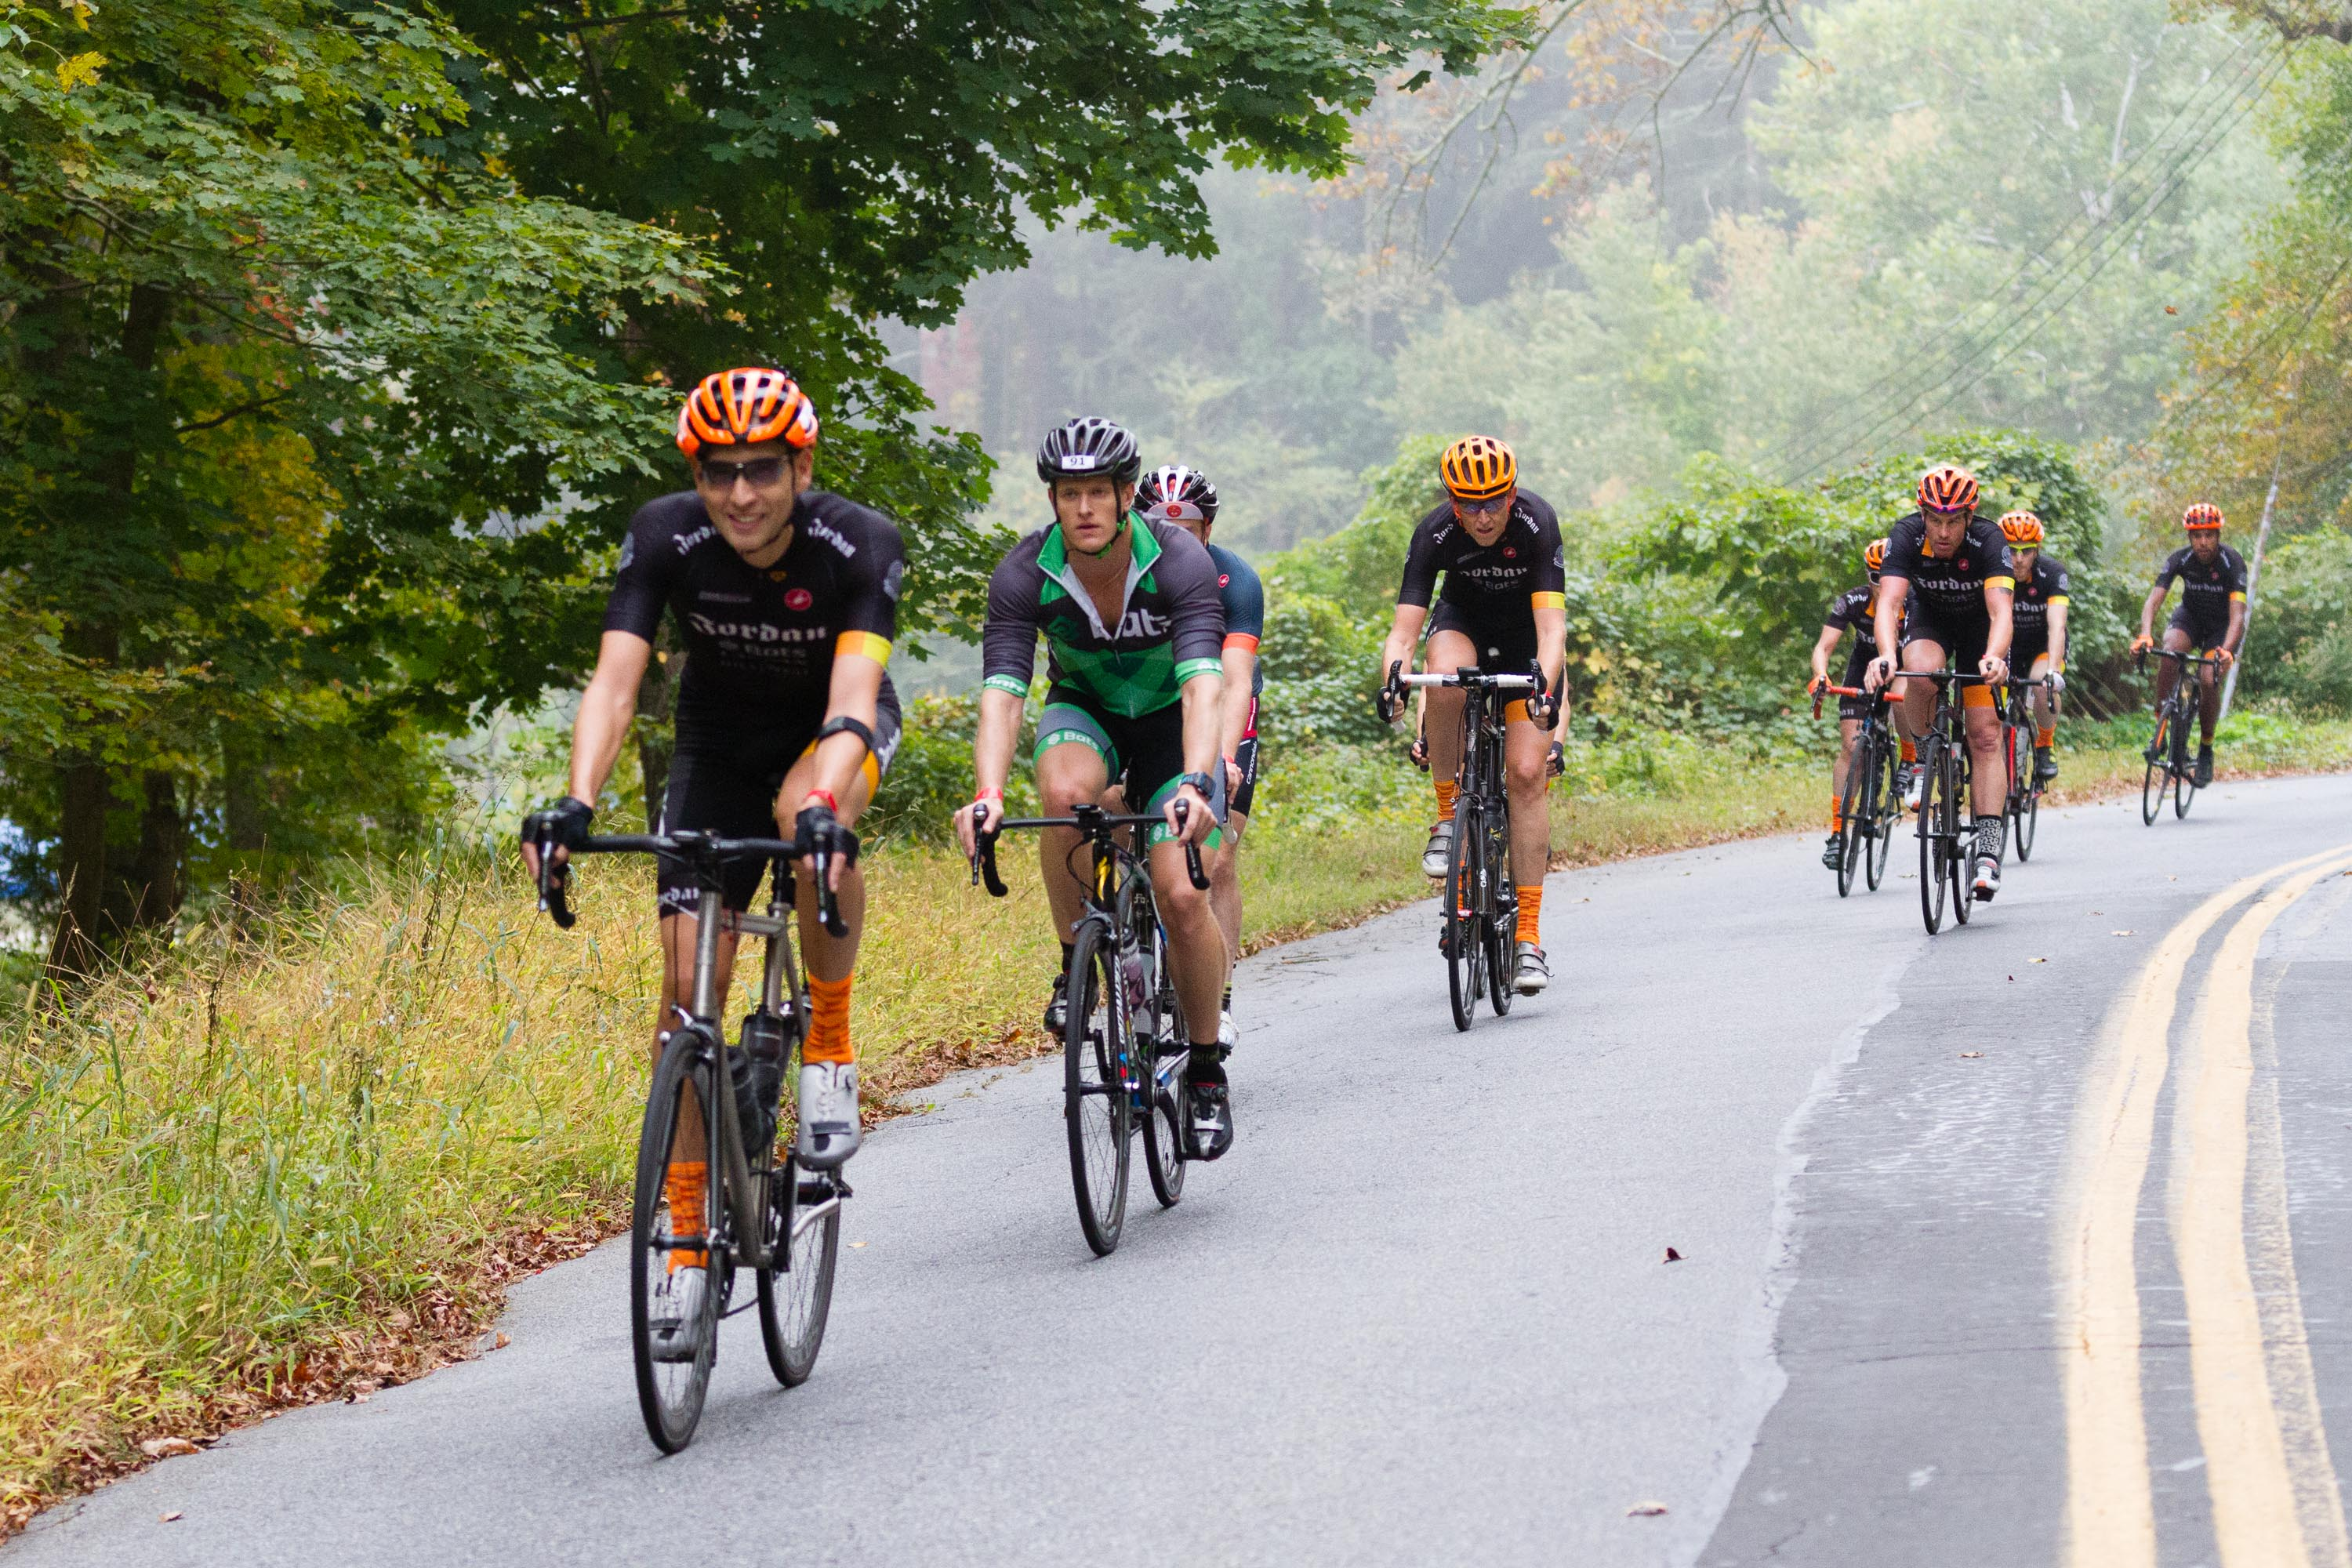 Speed Traders Race for Autism Research on Wall Street Bike Ride